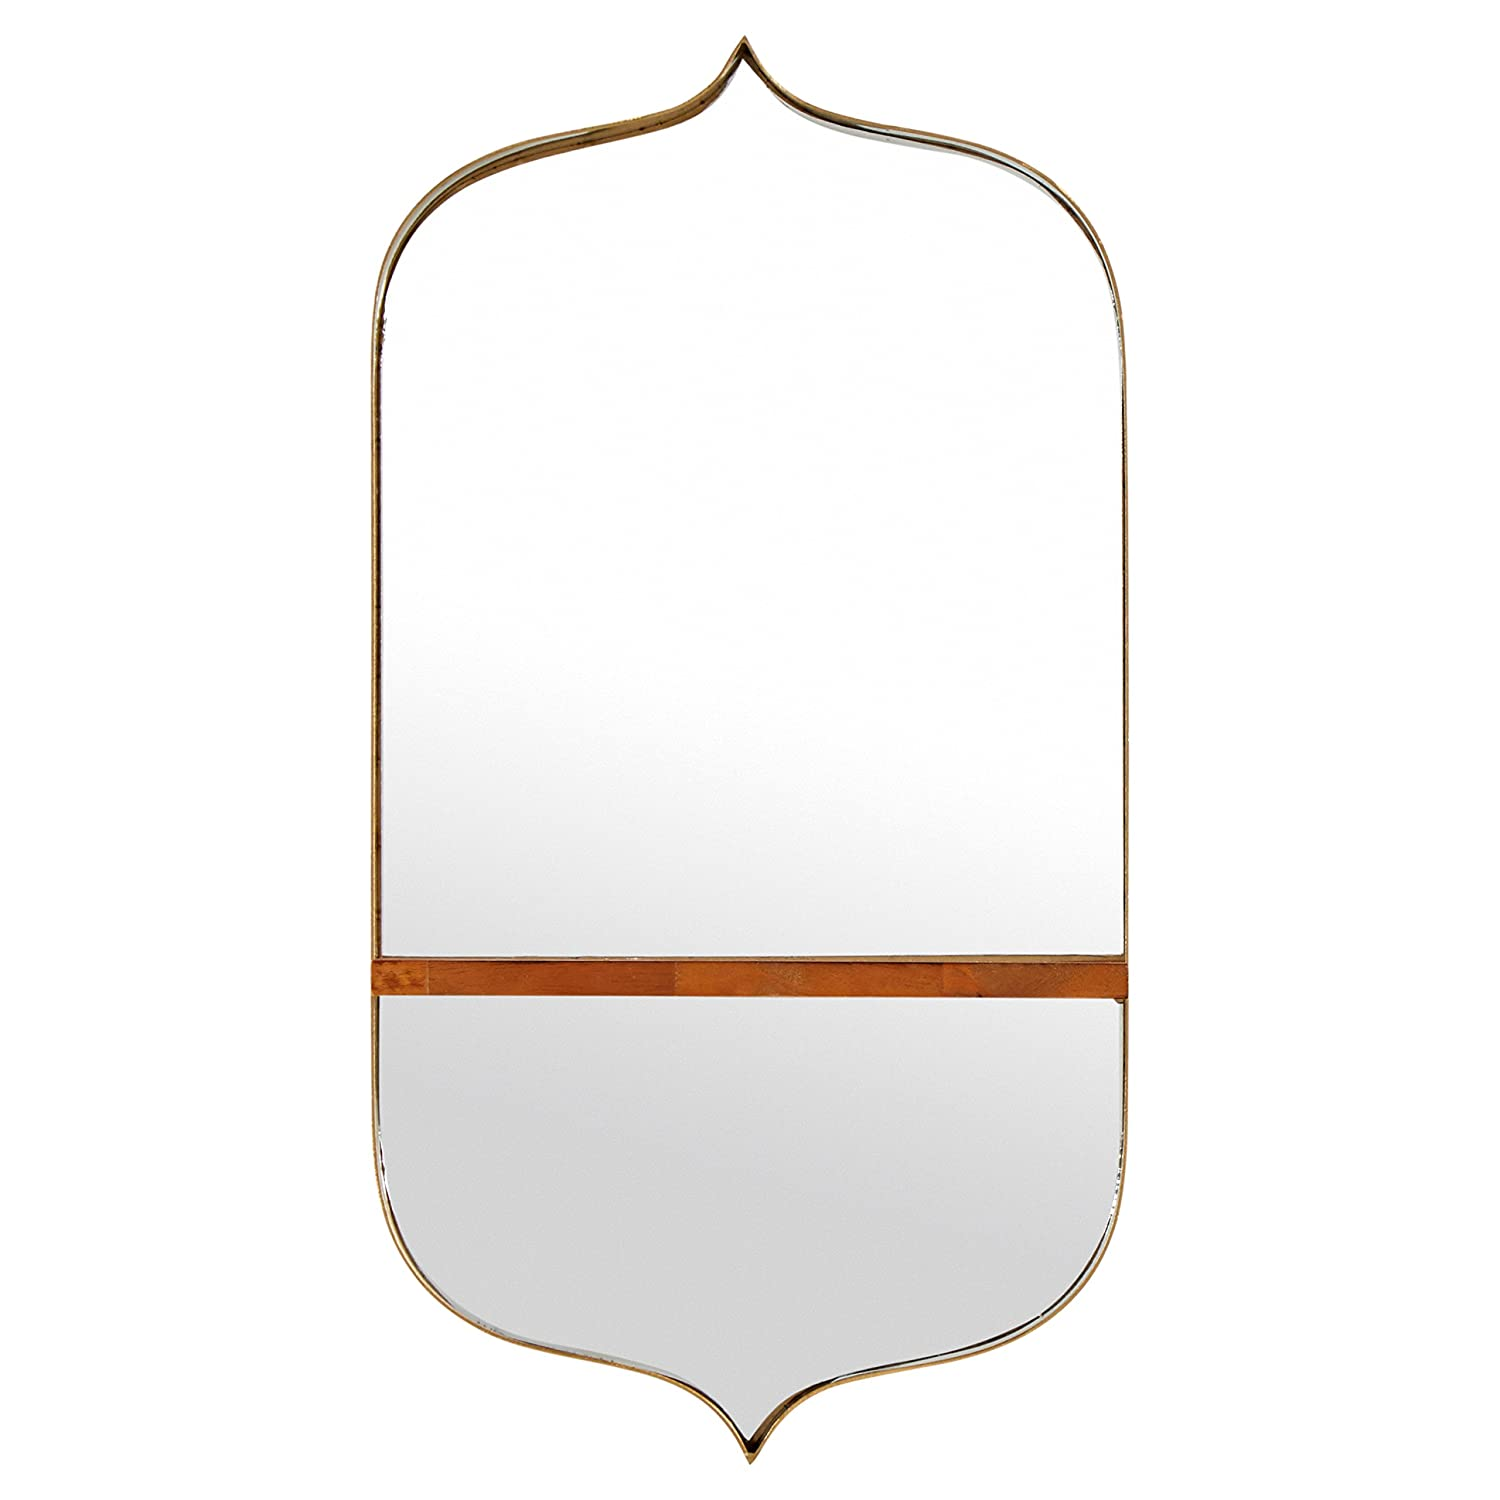 Rivet Modern Curved Iron Mirror with Wood Shelf, 24H, Gold Finish 24H L166006